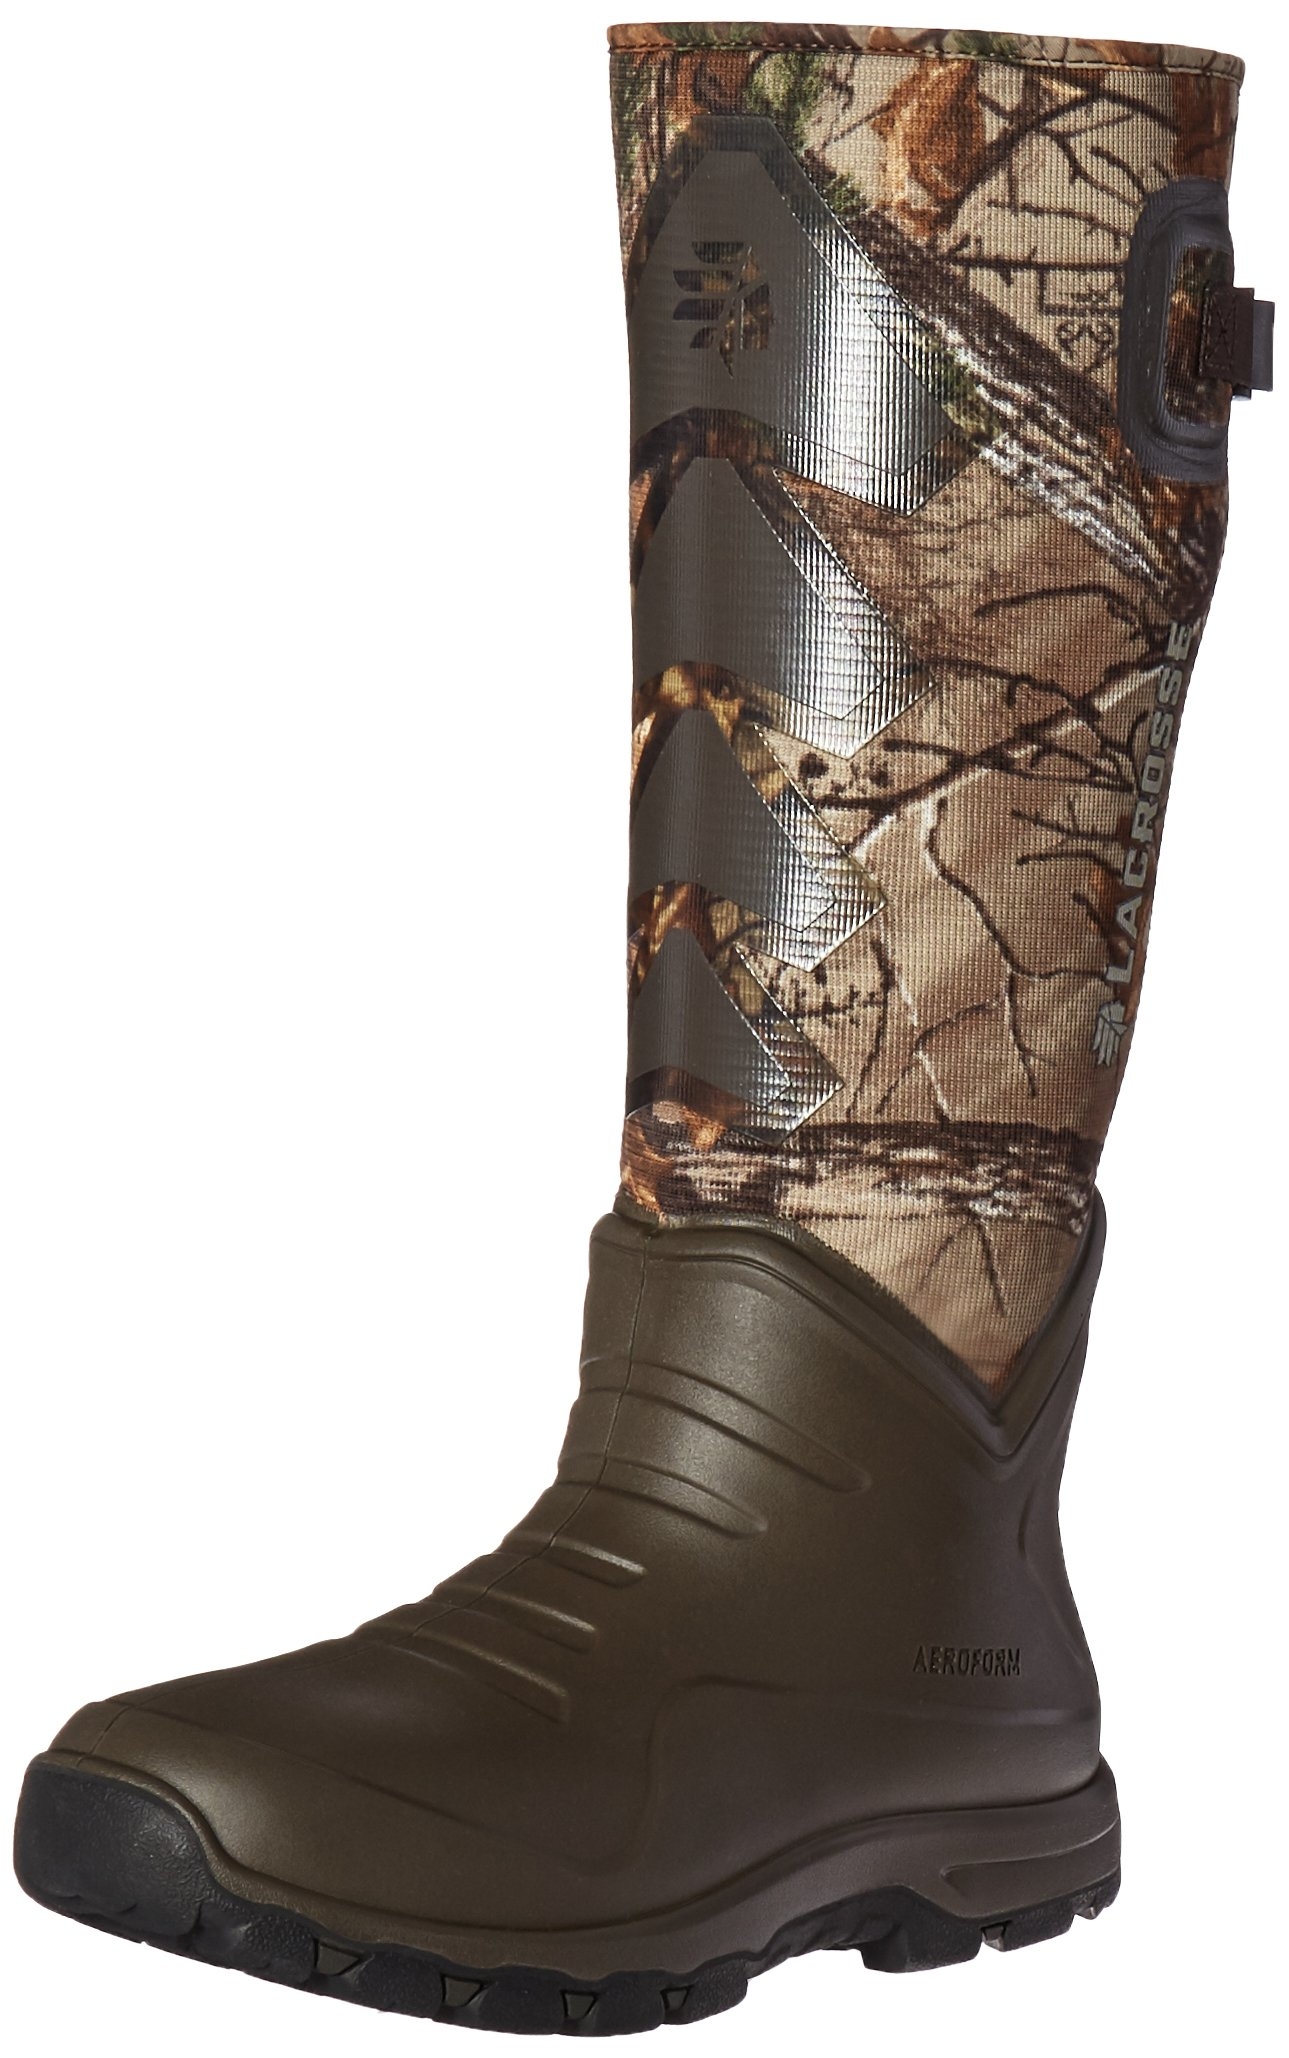 Lacrosse Men's Aerohead Sport 16'' 3.5MM Hunting Shoes, Realtree Extra, 7 M US by Lacrosse (Image #1)